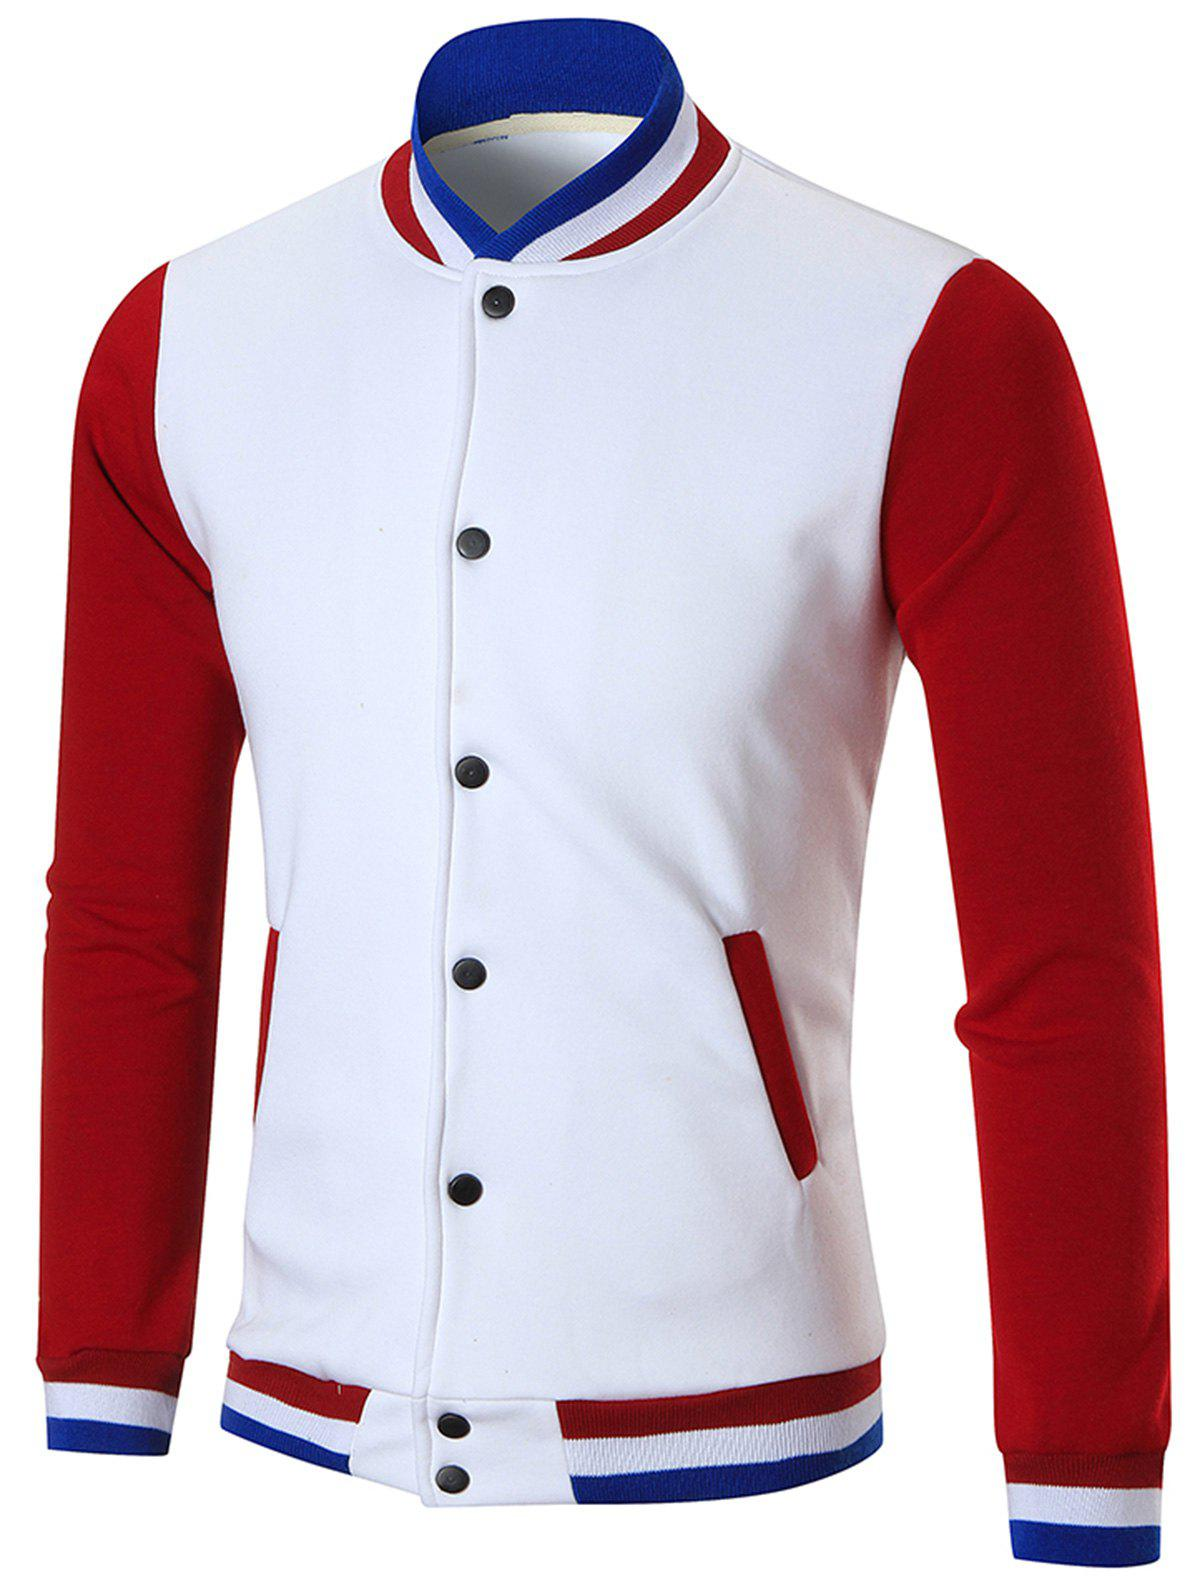 Color Block Casual Sports Baseball JacketMEN<br><br>Size: XL; Color: WHITE; Clothes Type: Jackets; Style: Casual,Fashion,Streetwear; Material: Cotton,Polyester; Collar: Stand Collar; Shirt Length: Regular; Sleeve Length: Long Sleeves; Season: Fall,Spring,Winter; Closure Type: Single Breasted; Occasion: Casual ,Daily Use,Going Out,Sports; Weight: 0.7000kg; Package Contents: 1 x Jacket;